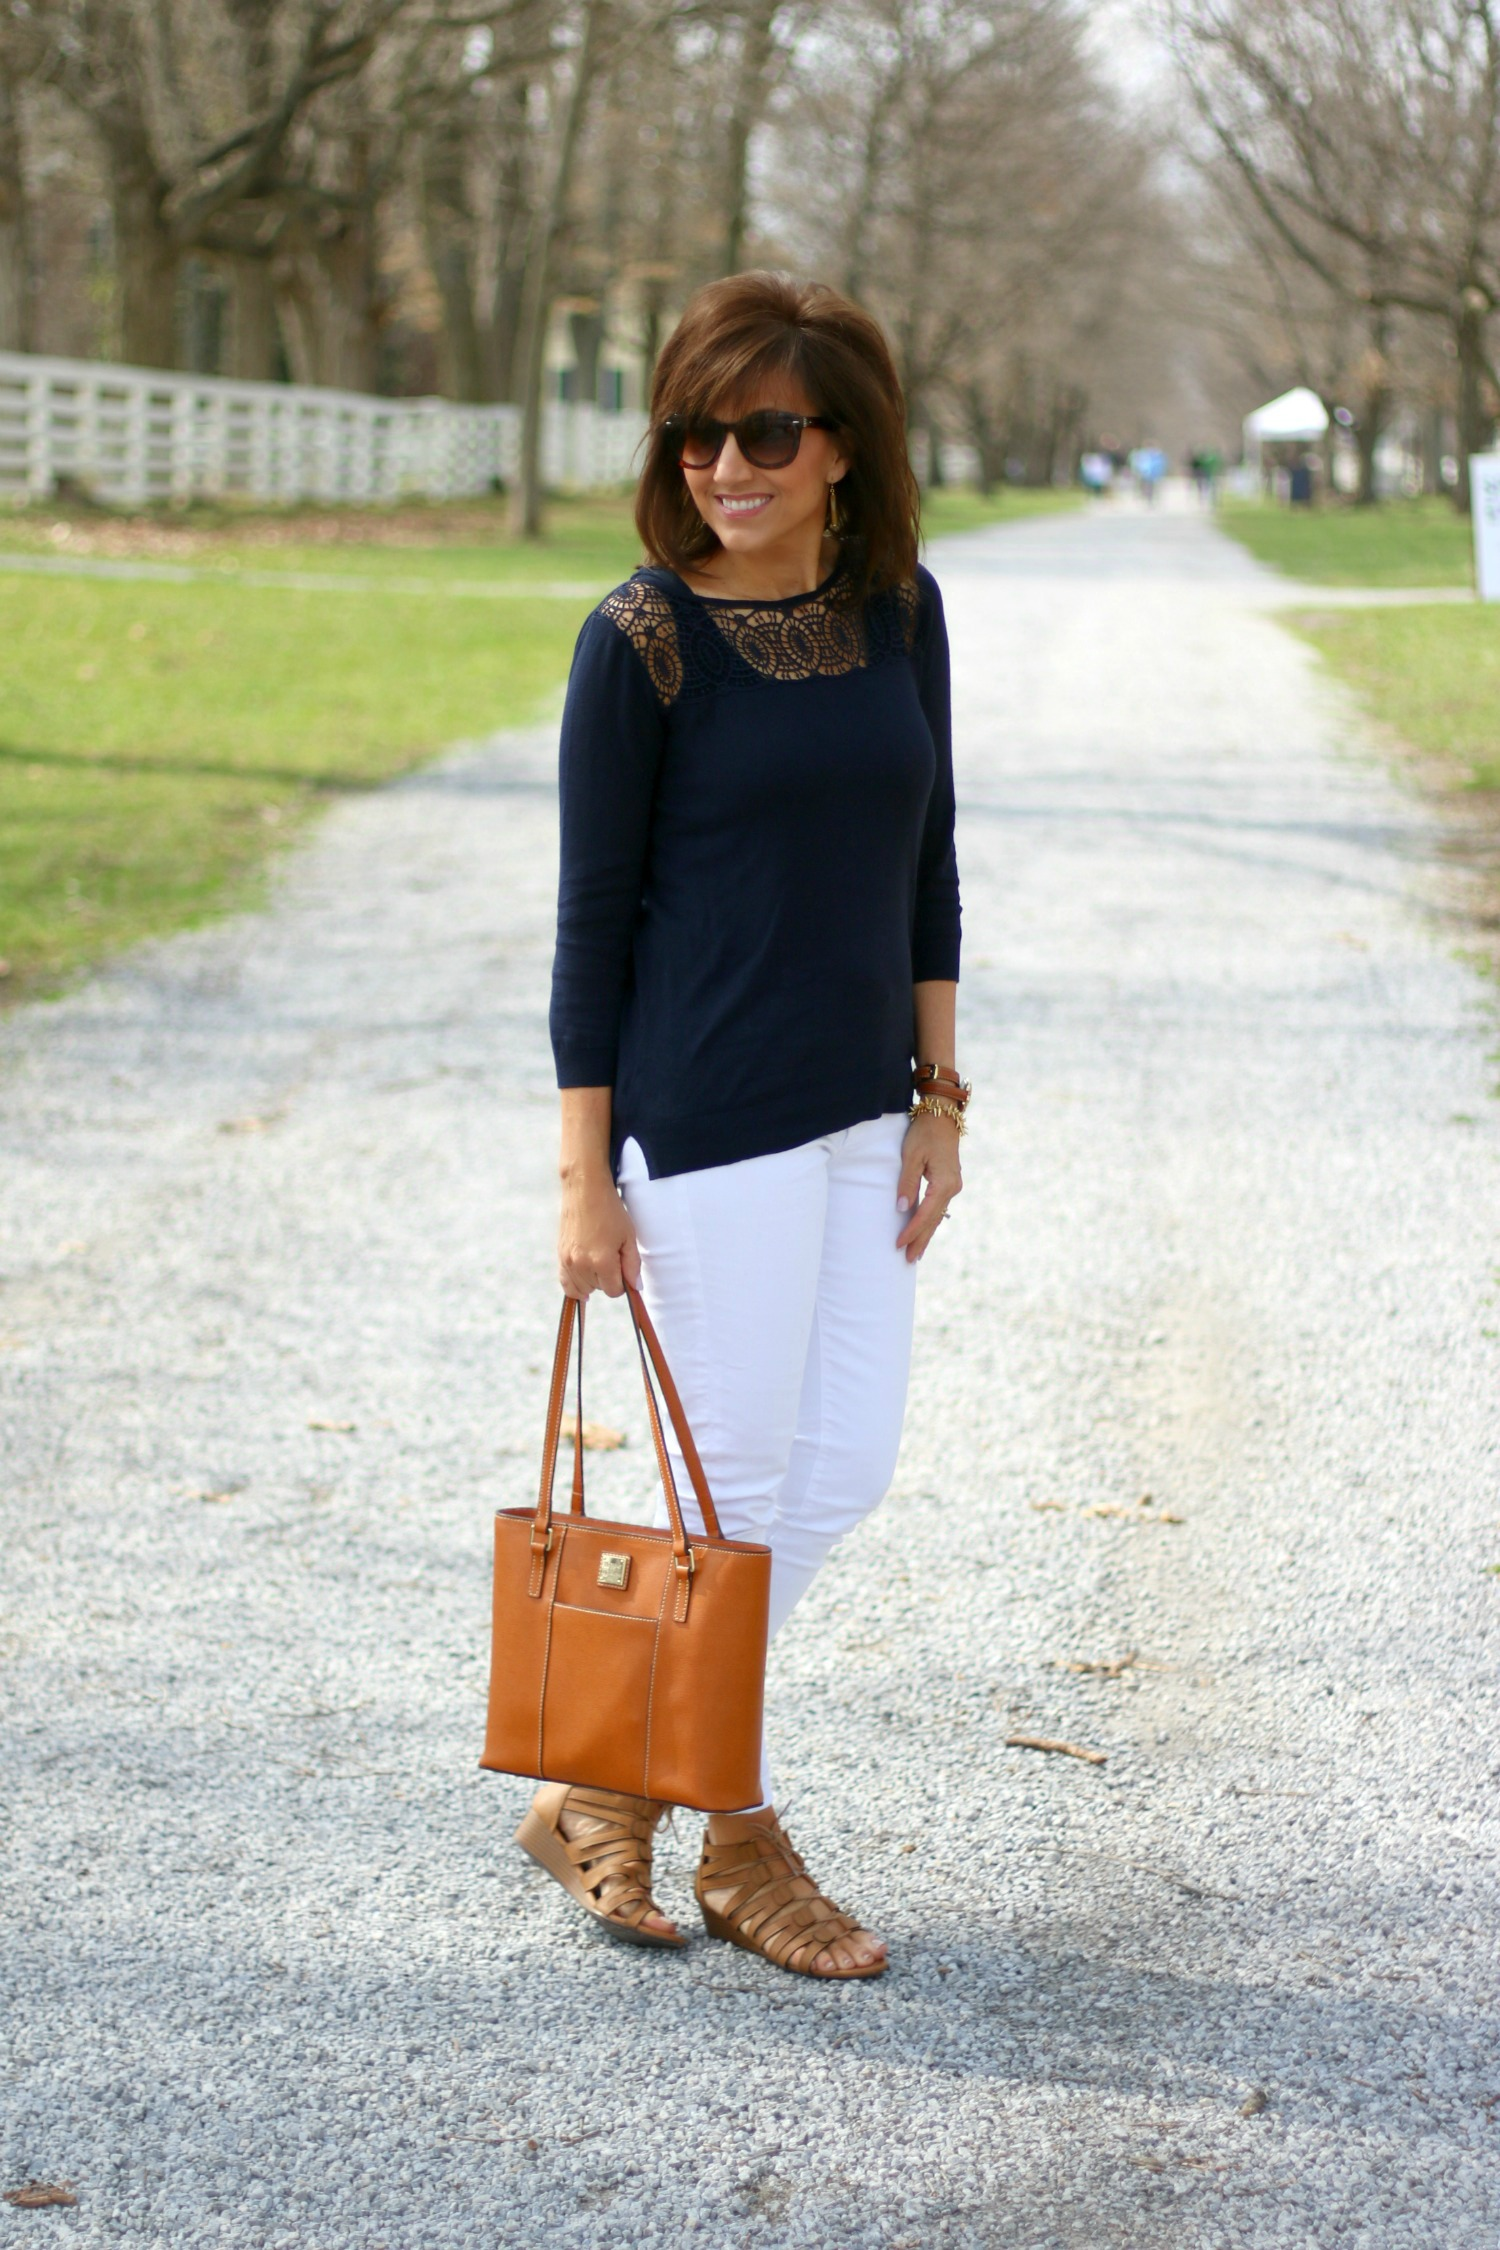 27 Days of Spring Fashion: Payless Spring Shoe Trends